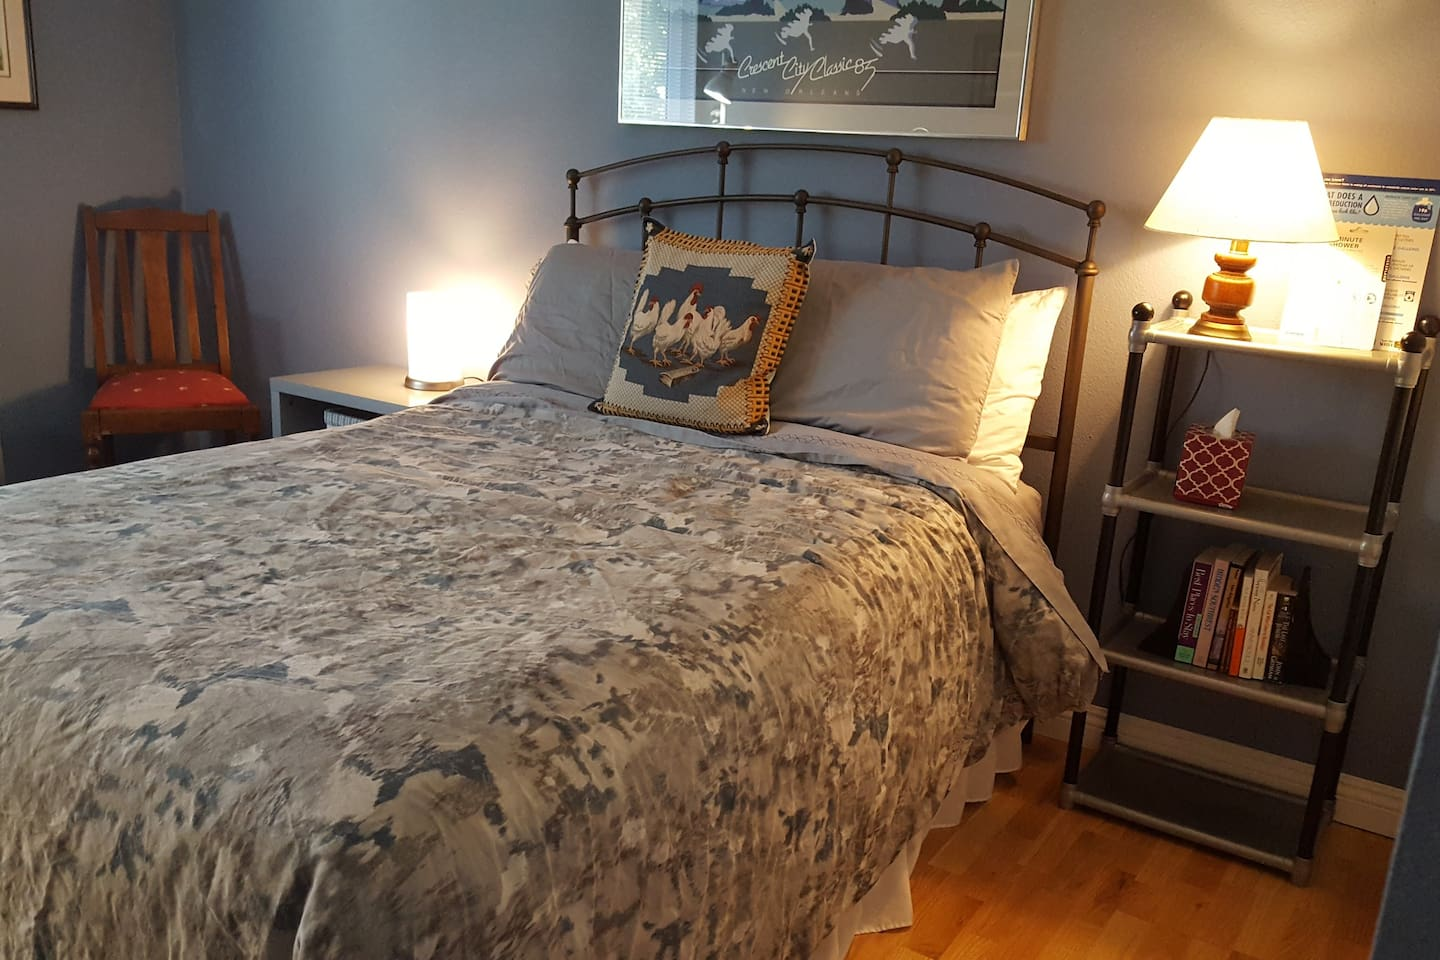 #Thousand Oaks Getaway: Plush linens  on a  full sized bed (not a Queen)for one or two people who like each other.